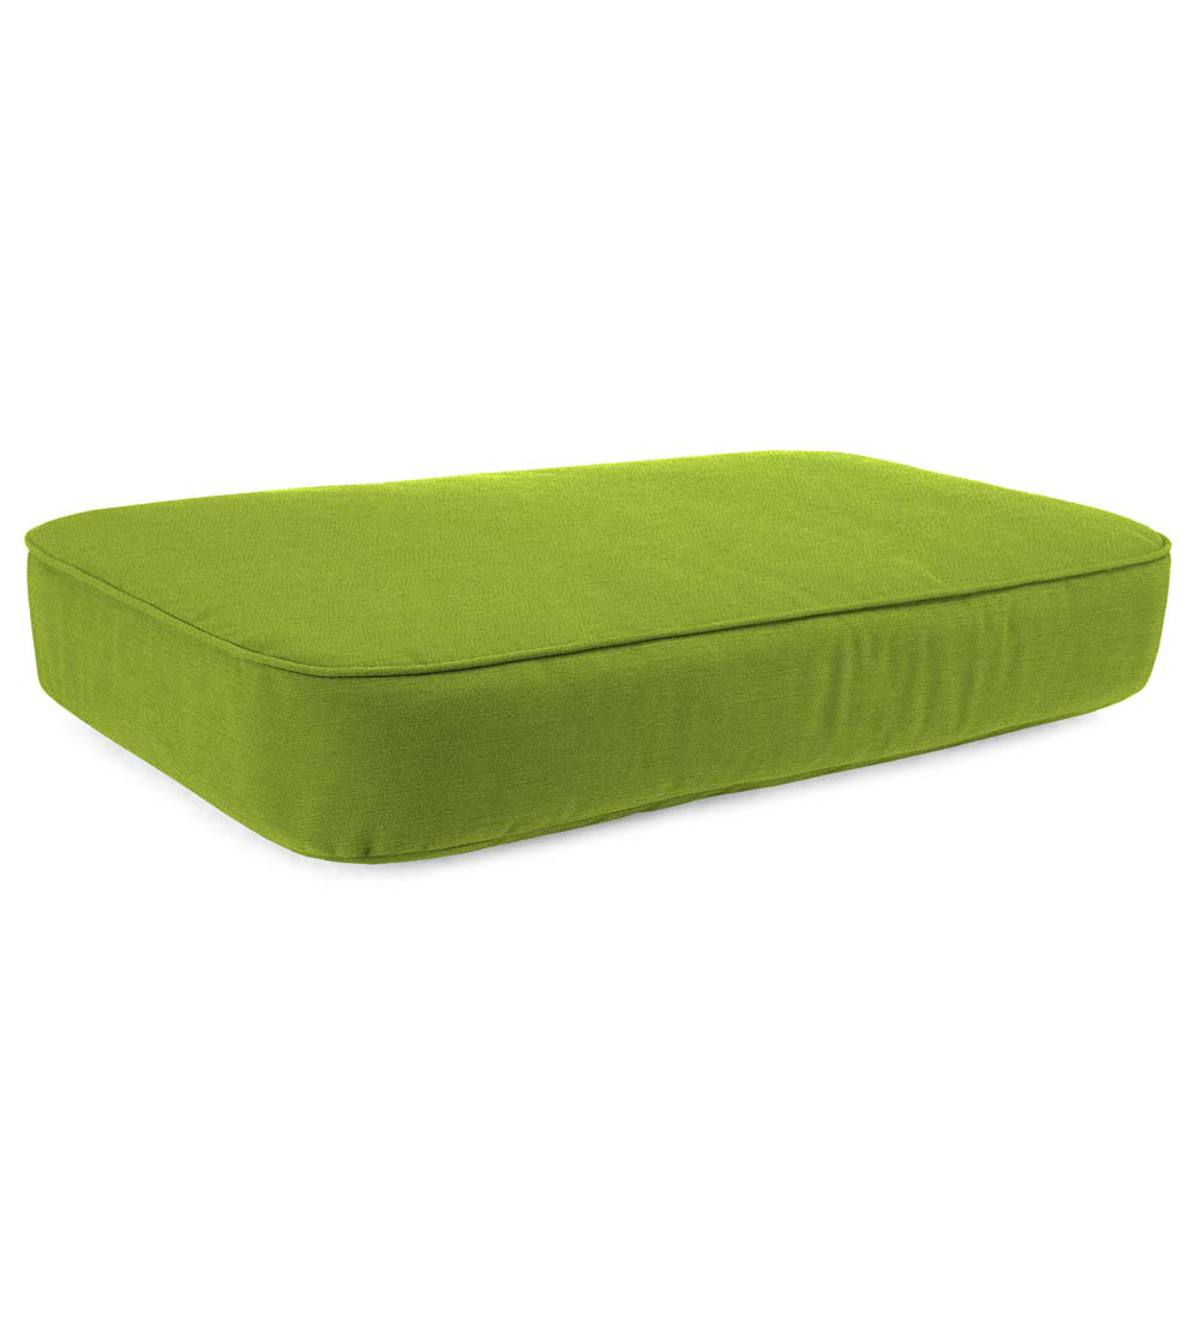 Deluxe Polyester Chaise Cushion, Prospect Hill - Leaf Green